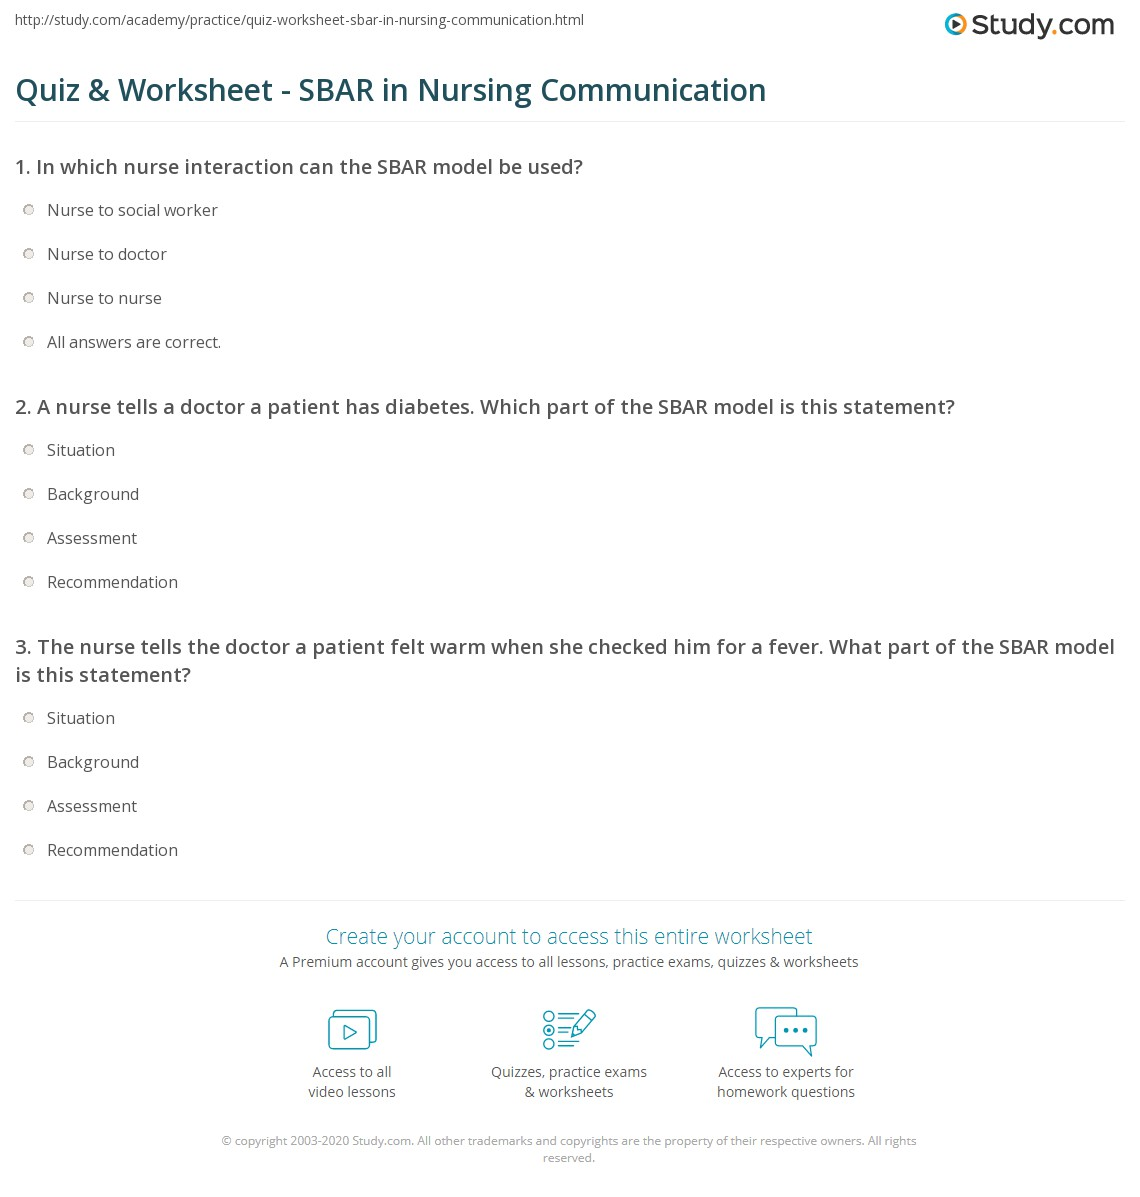 picture regarding Sbar Printable Forms called Quiz Worksheet - SBAR in just Nursing Interaction